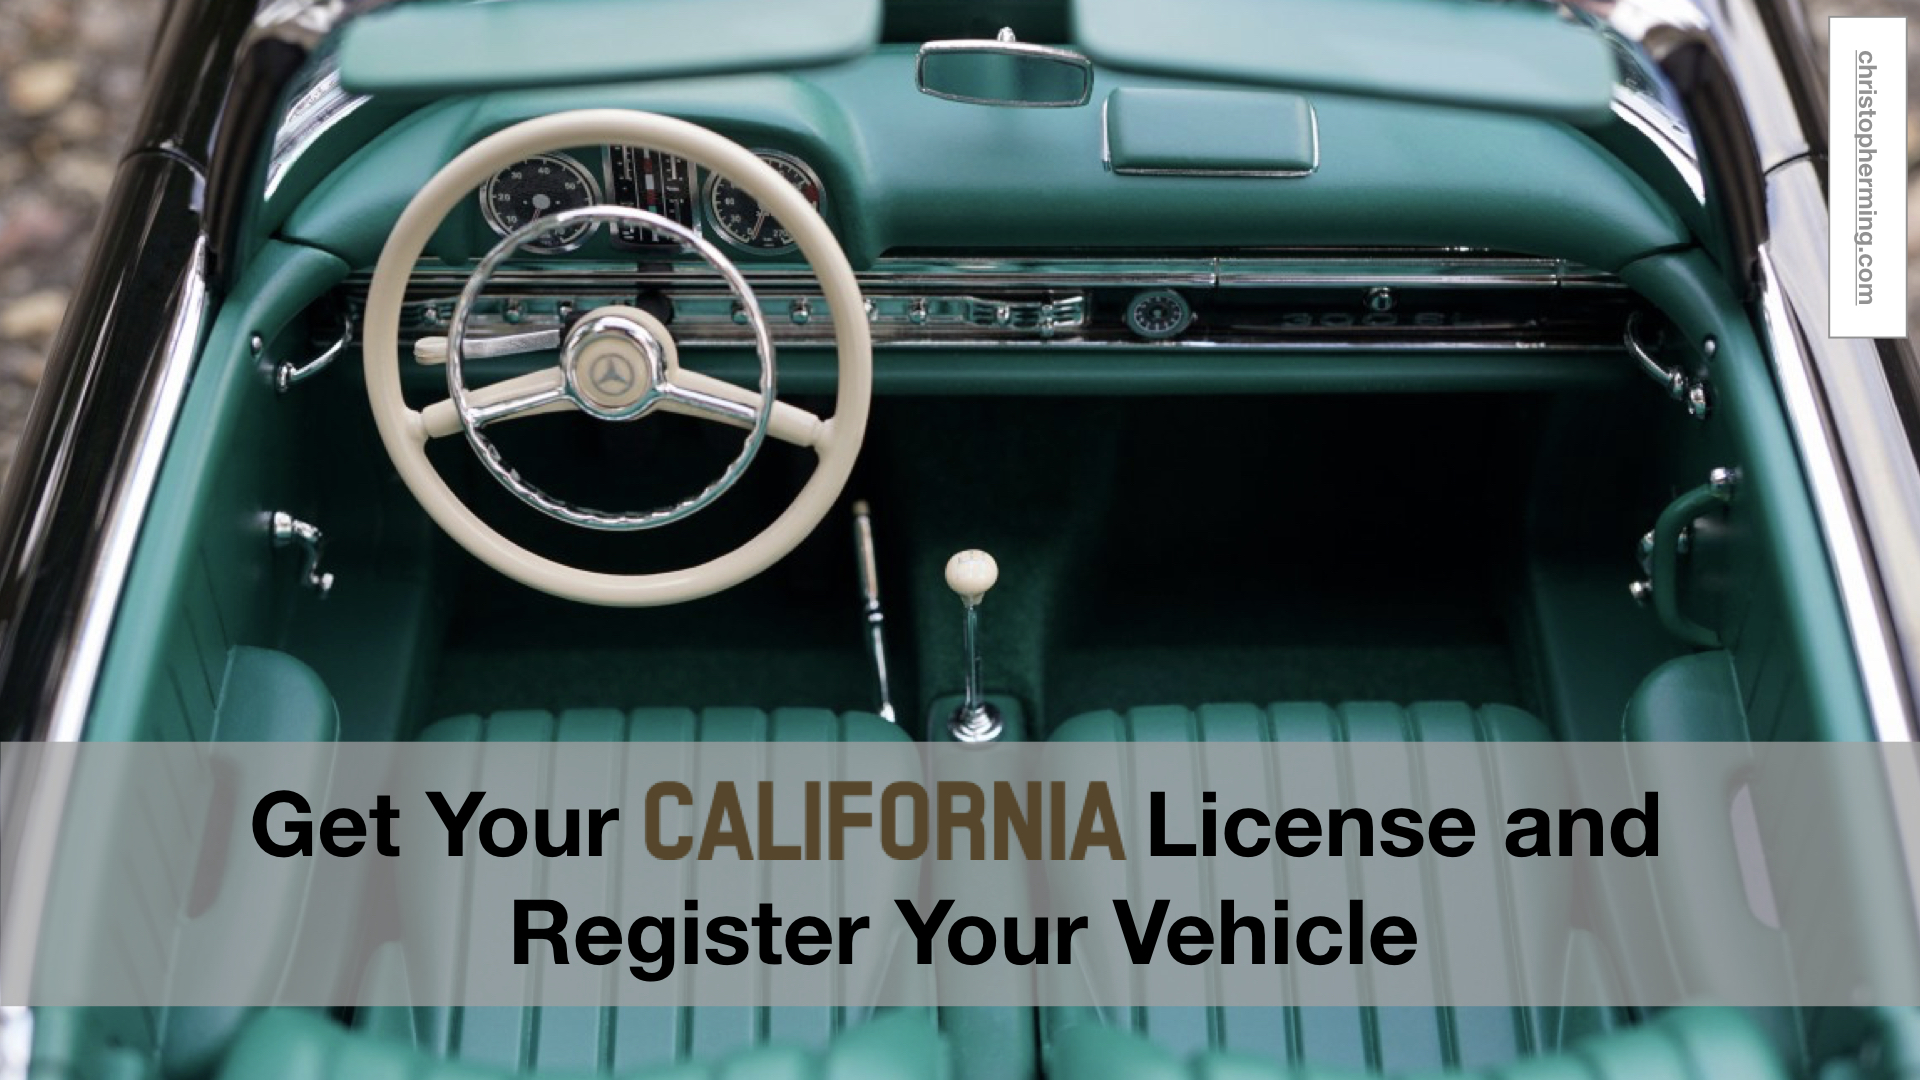 Your Guide to Get Your California License and Register Your